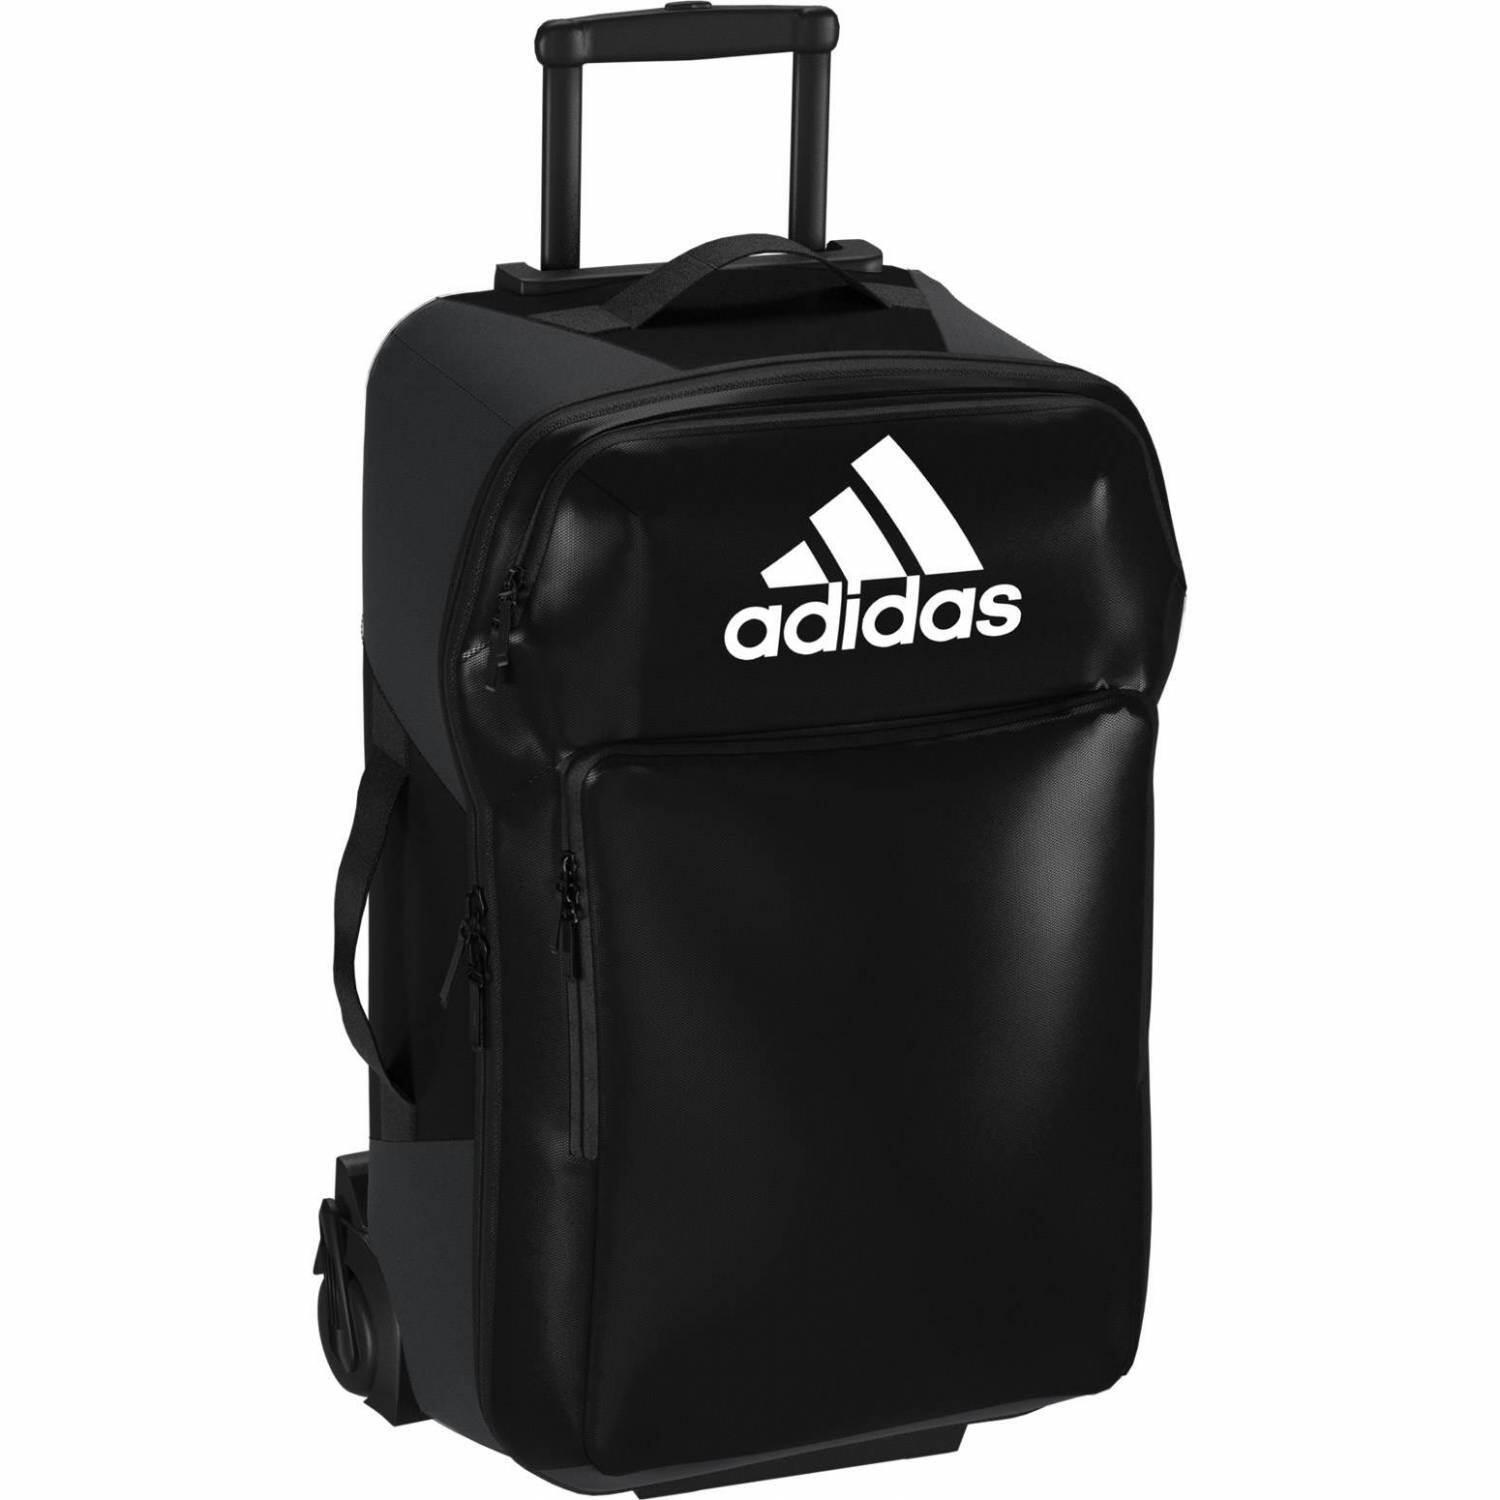 adidas-team-trolley-m-farbe-black-black-white-